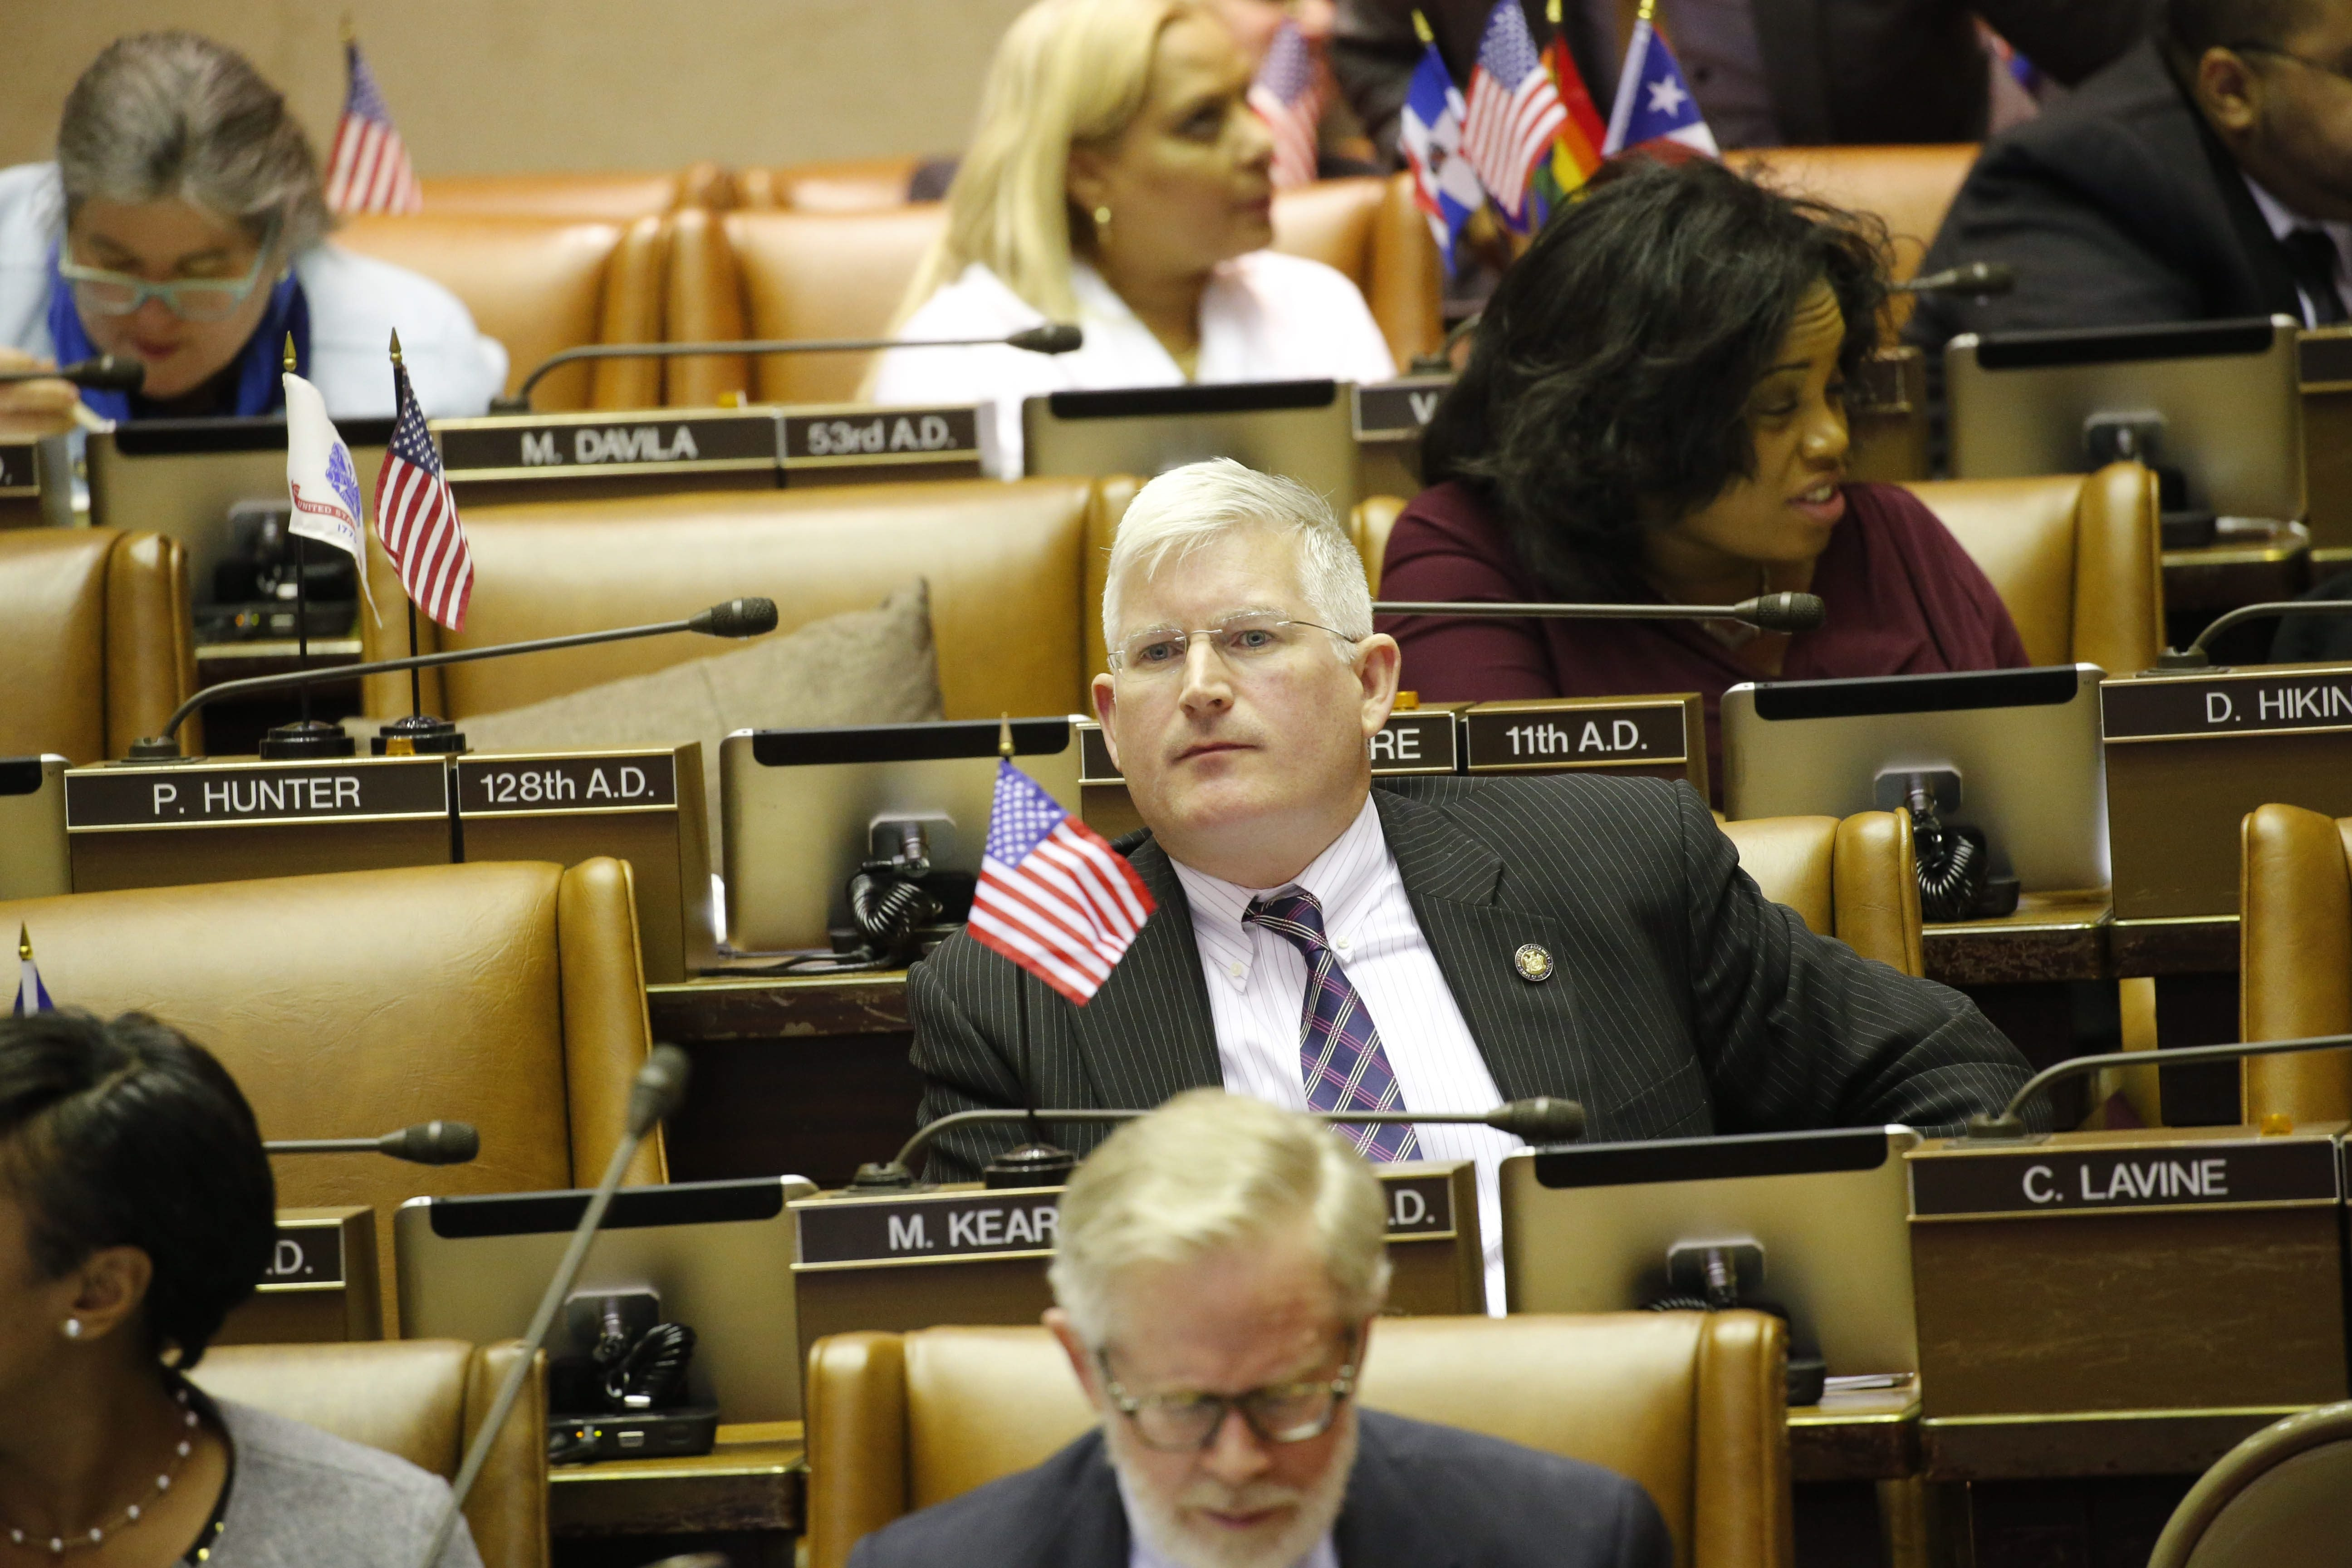 Assemblyman Michael Kearns as the New York State Assembly holds session at the Capitol in Albany, Tuesday, Jan. 12, 2016.  (Derek Gee/Buffalo News)